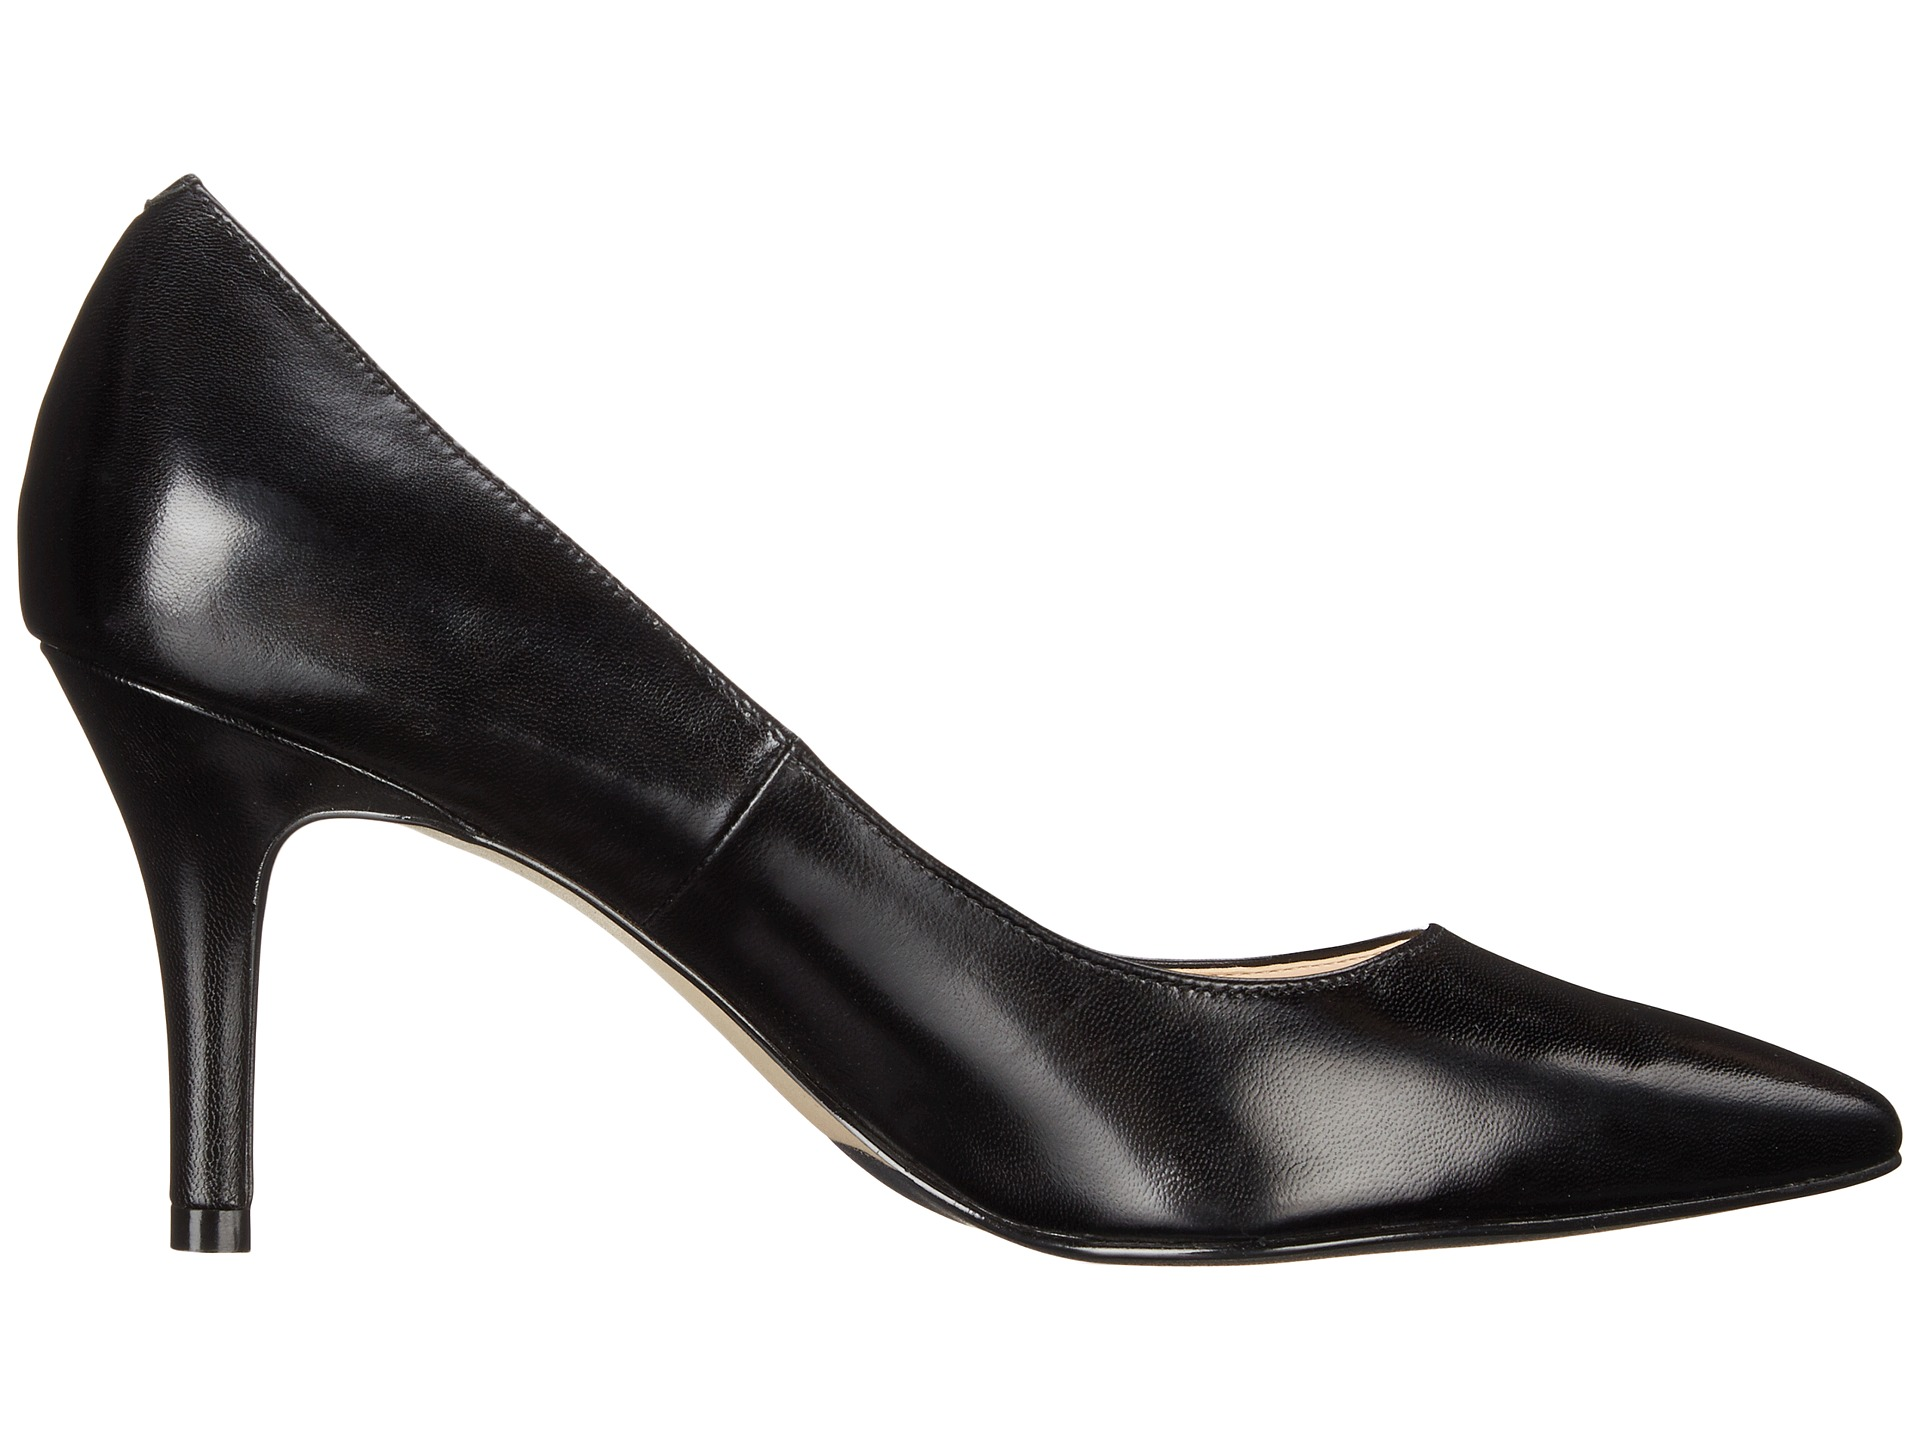 Cole Haan Juliana Pump 75 Black Leather - Zappos.com Free Shipping ...